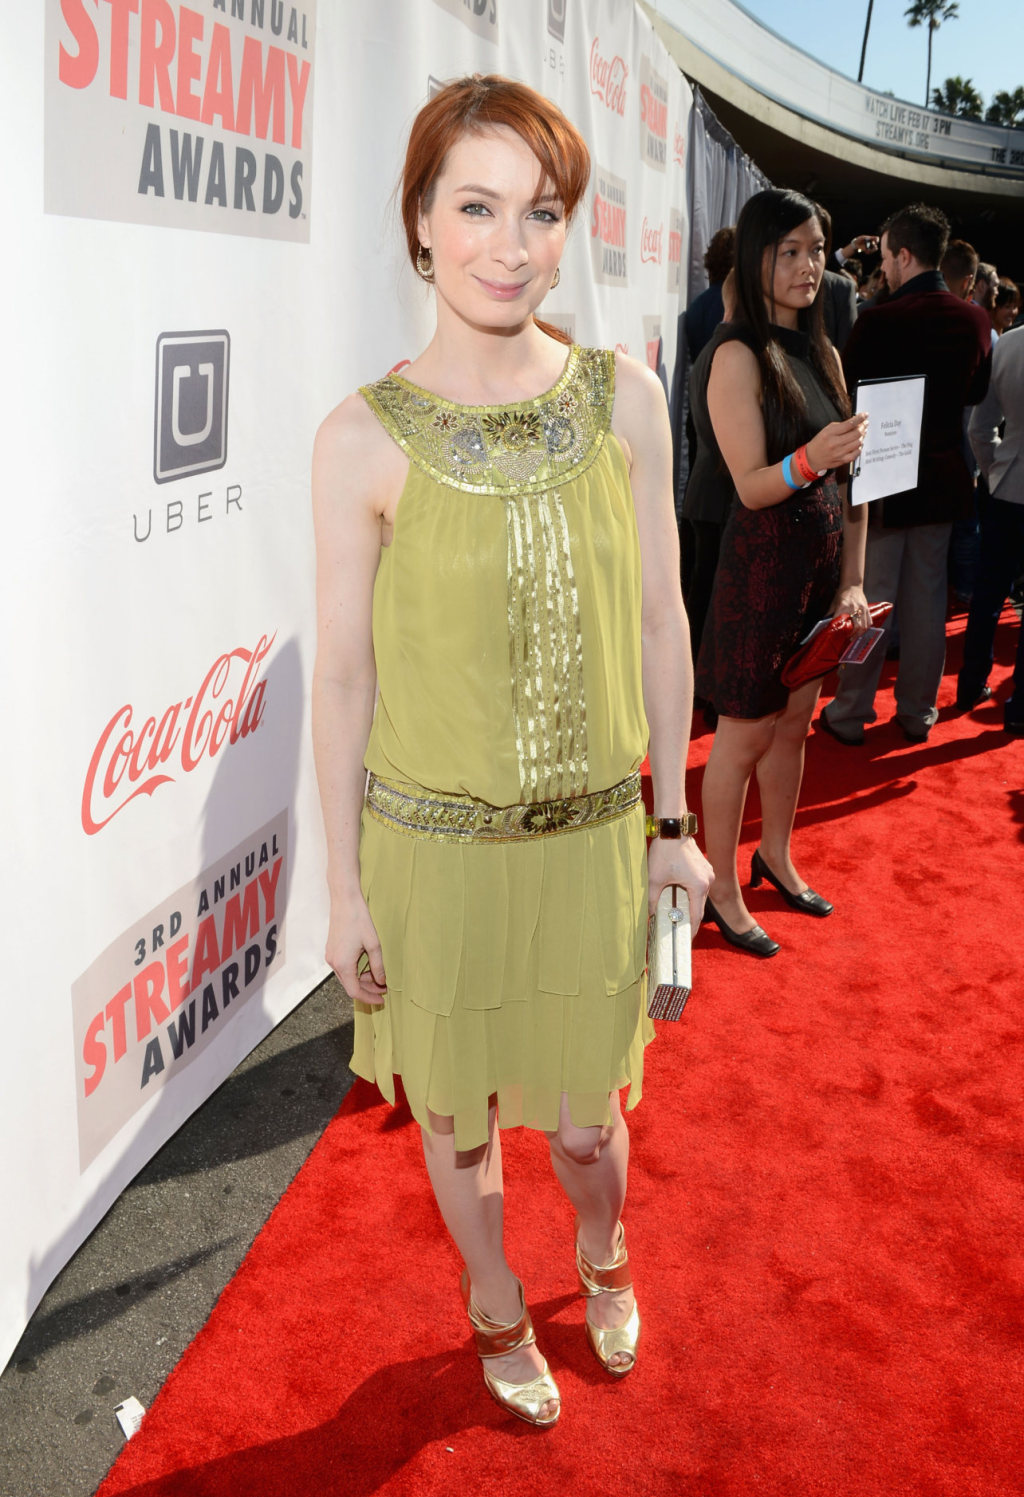 Felicia Day 2013 : Felicia Day – 2013 Streamy Awards -01